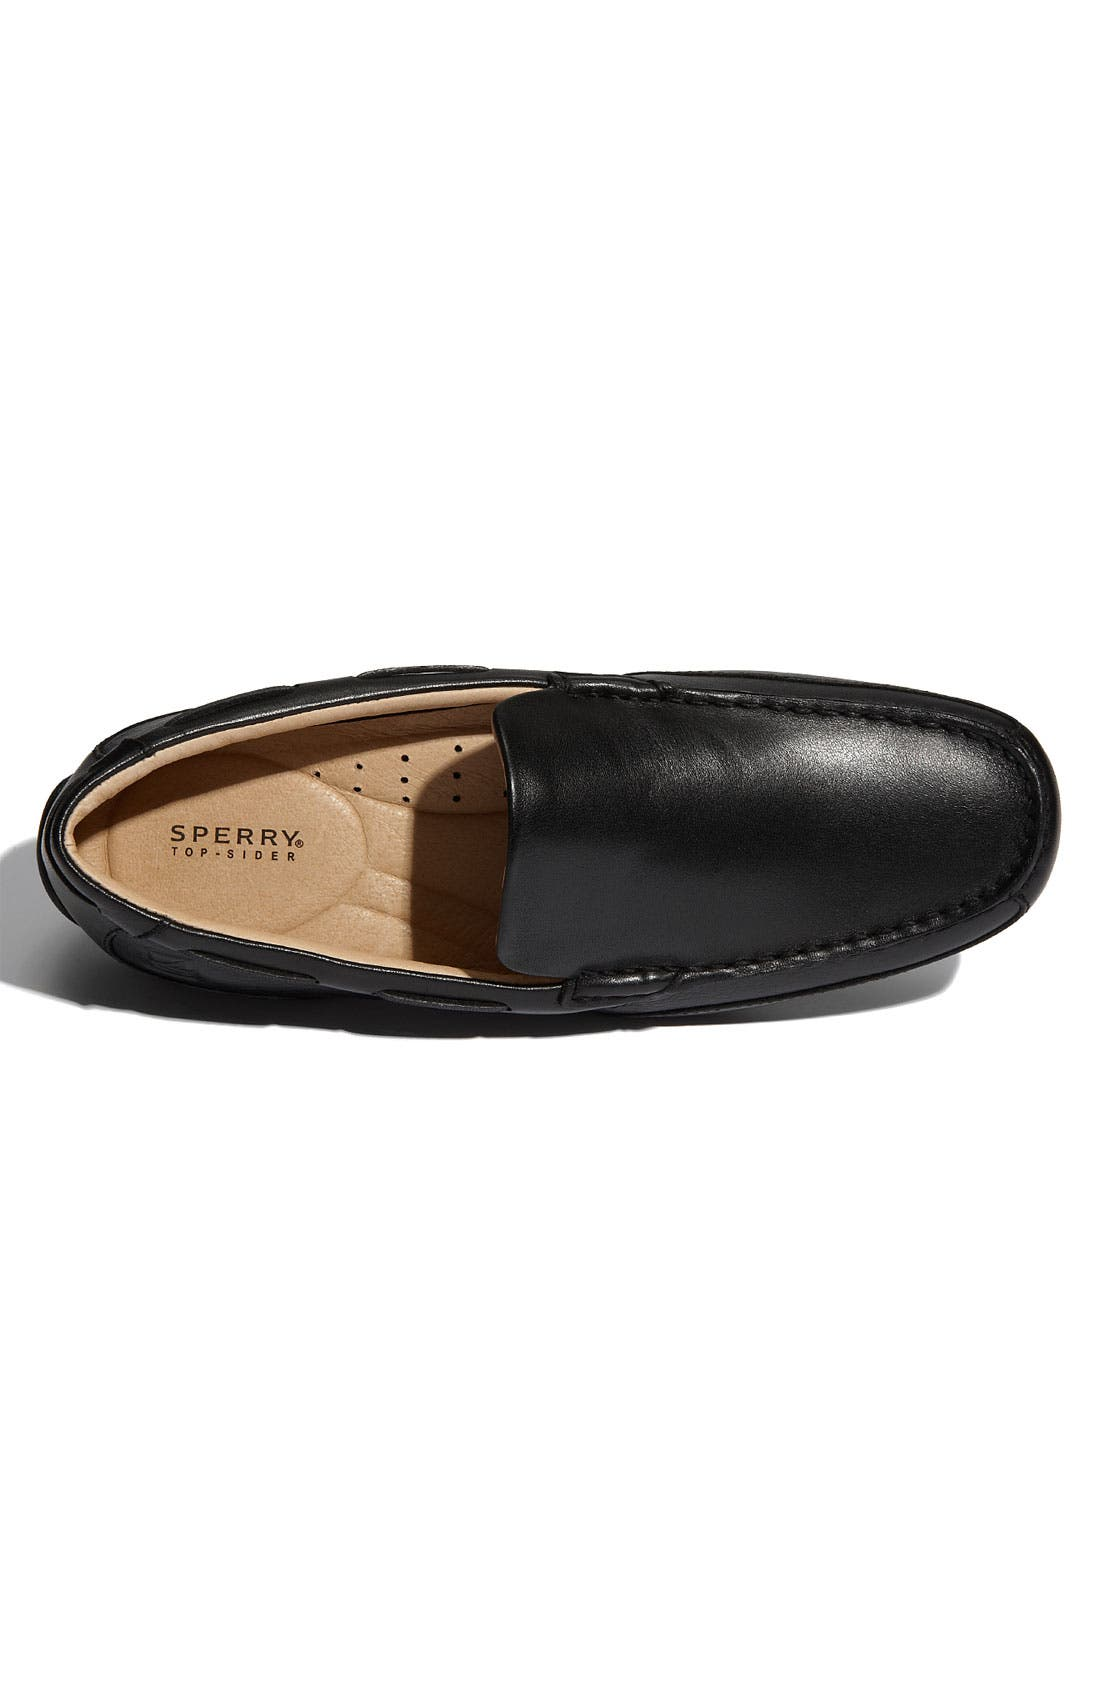 Top-Sider<sup>®</sup> 'Navigator Venetian' Driving Shoe,                             Alternate thumbnail 2, color,                             001